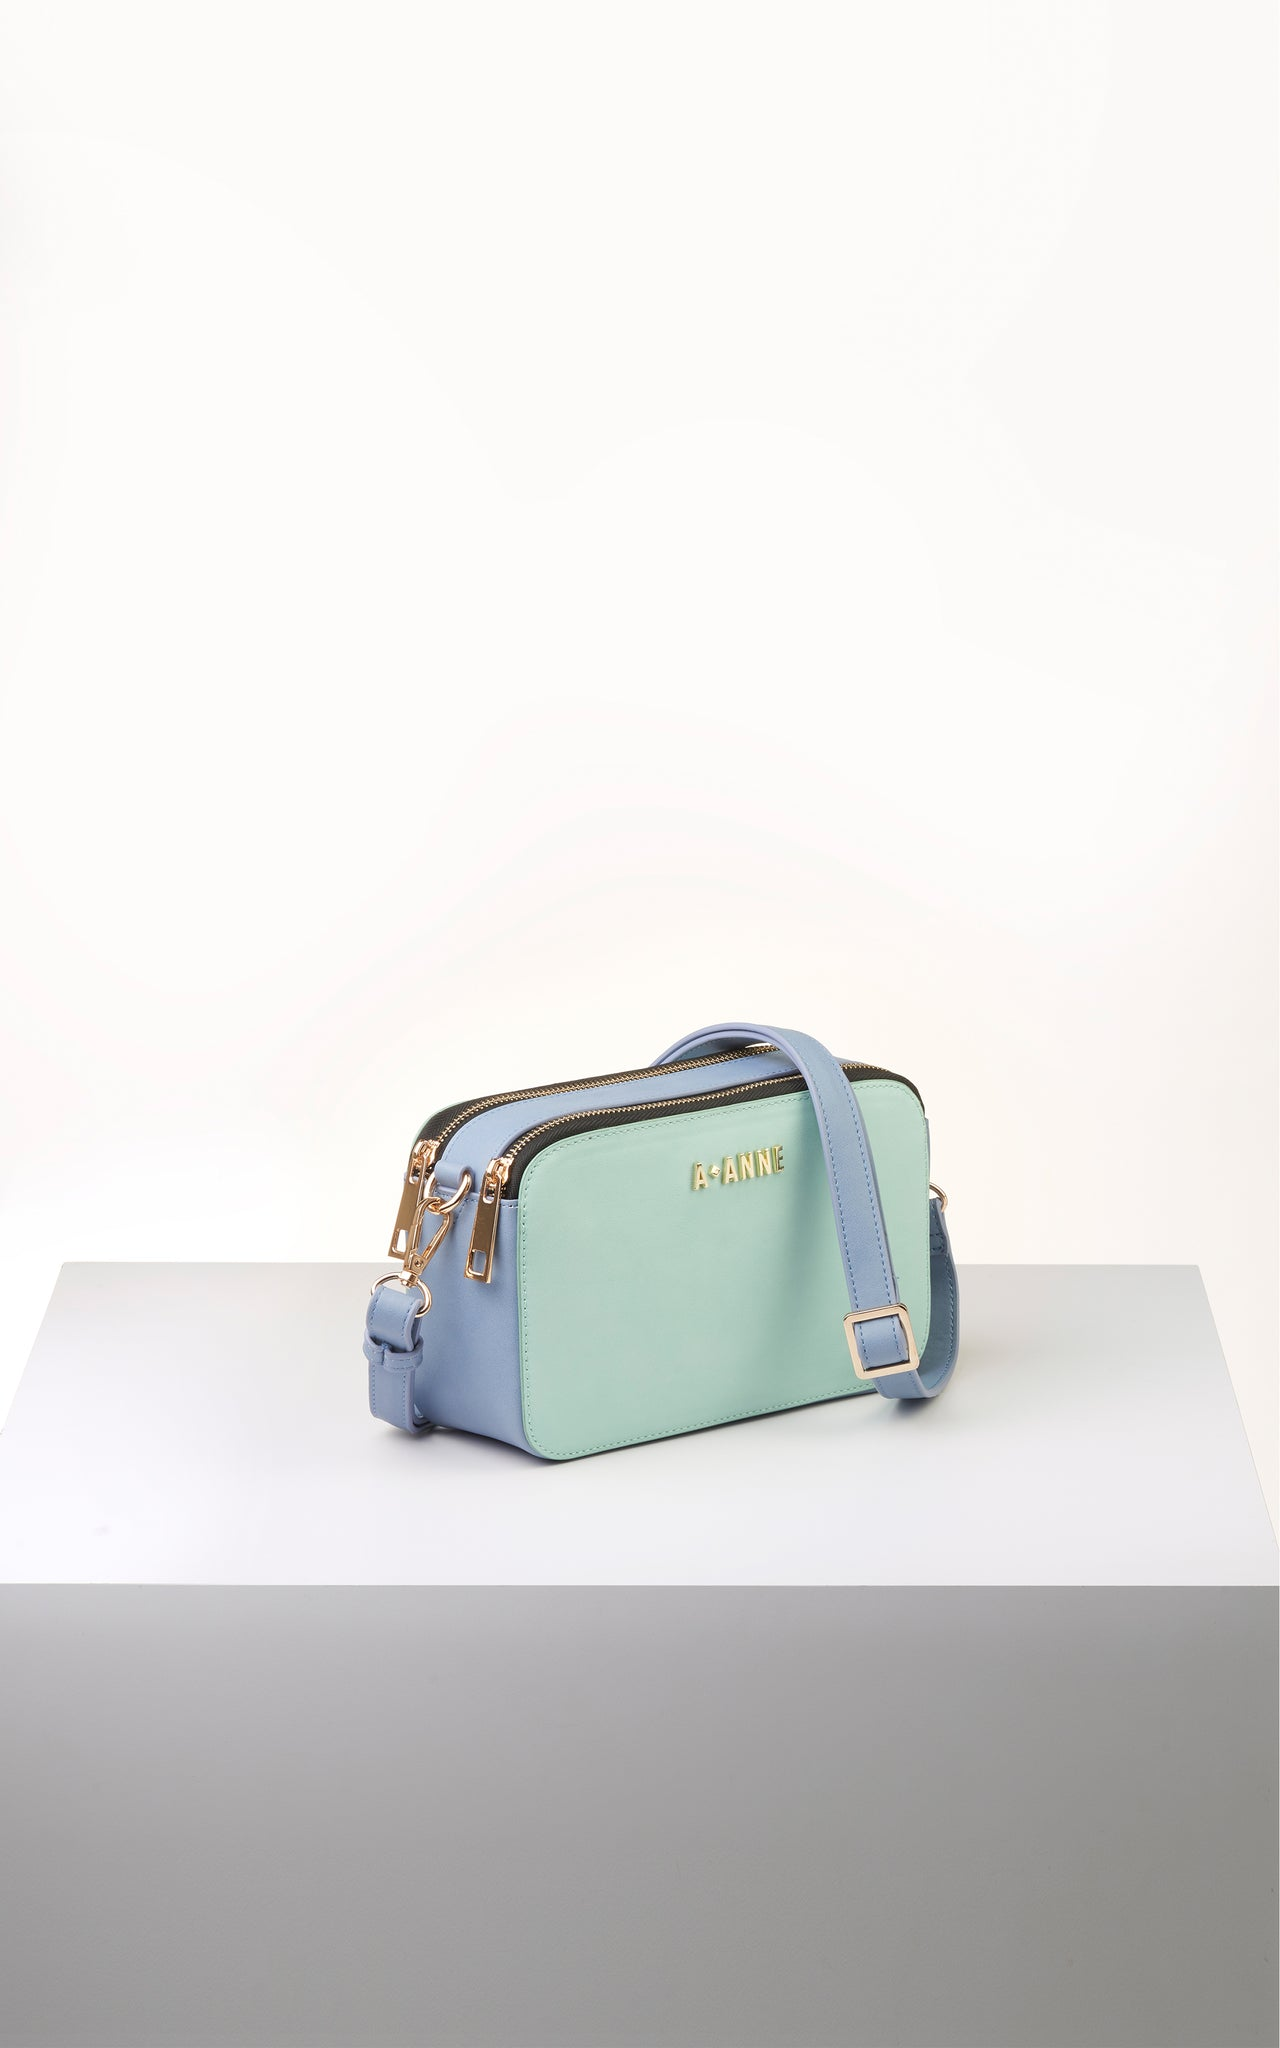 Mint Green Colourblock Crossbody - A.Anne, Tokidoki, Ashlyn Anne, Fashion, Handbags, School, Bag, Accessories